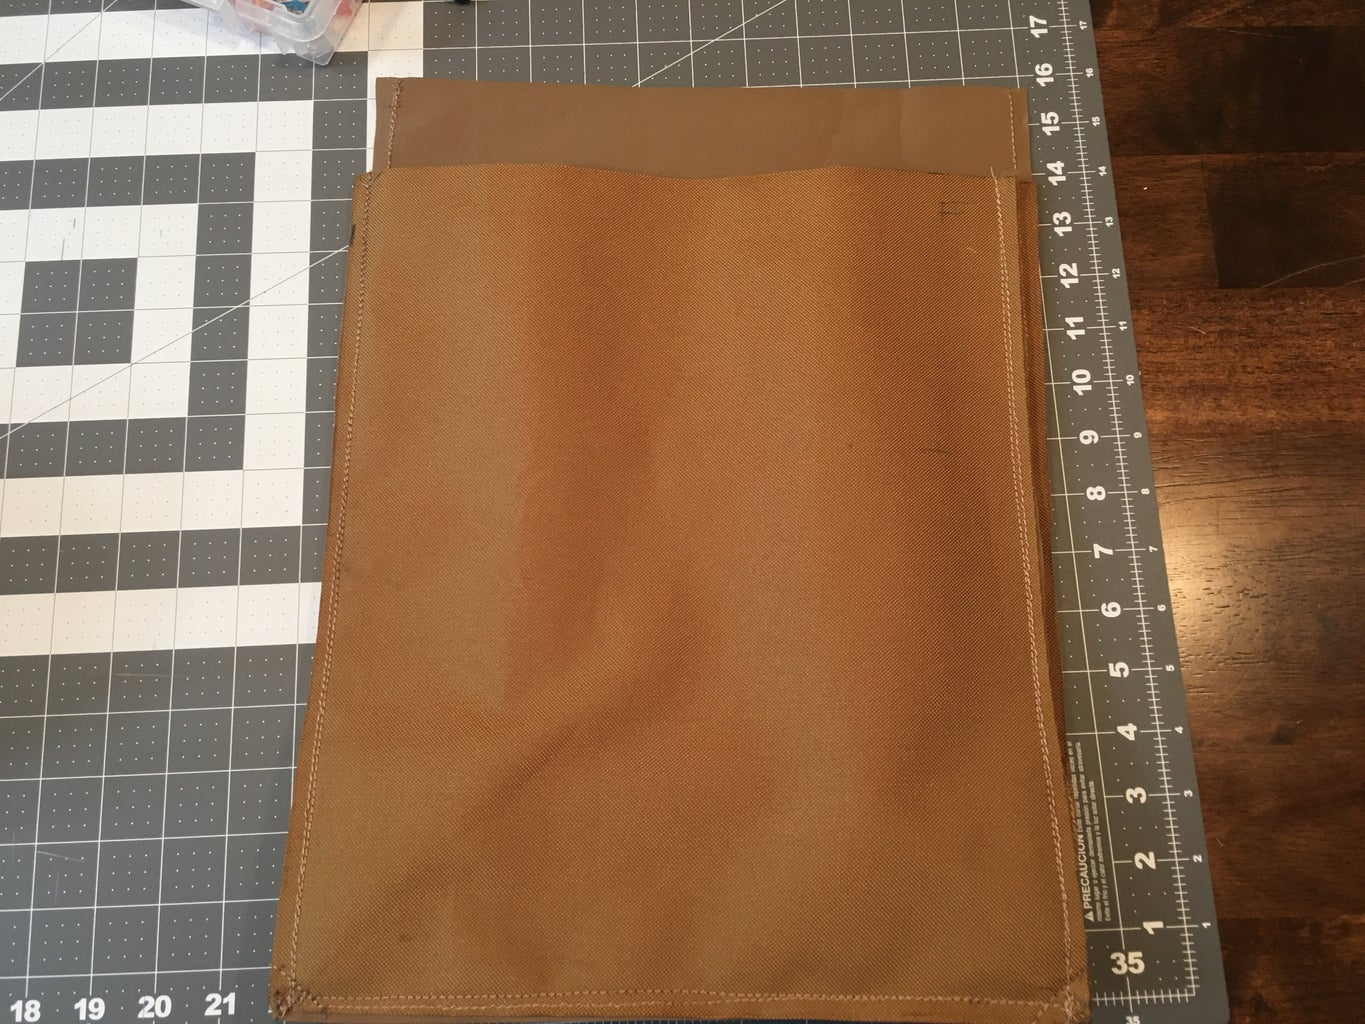 Sewing the Bottom to the Sides: